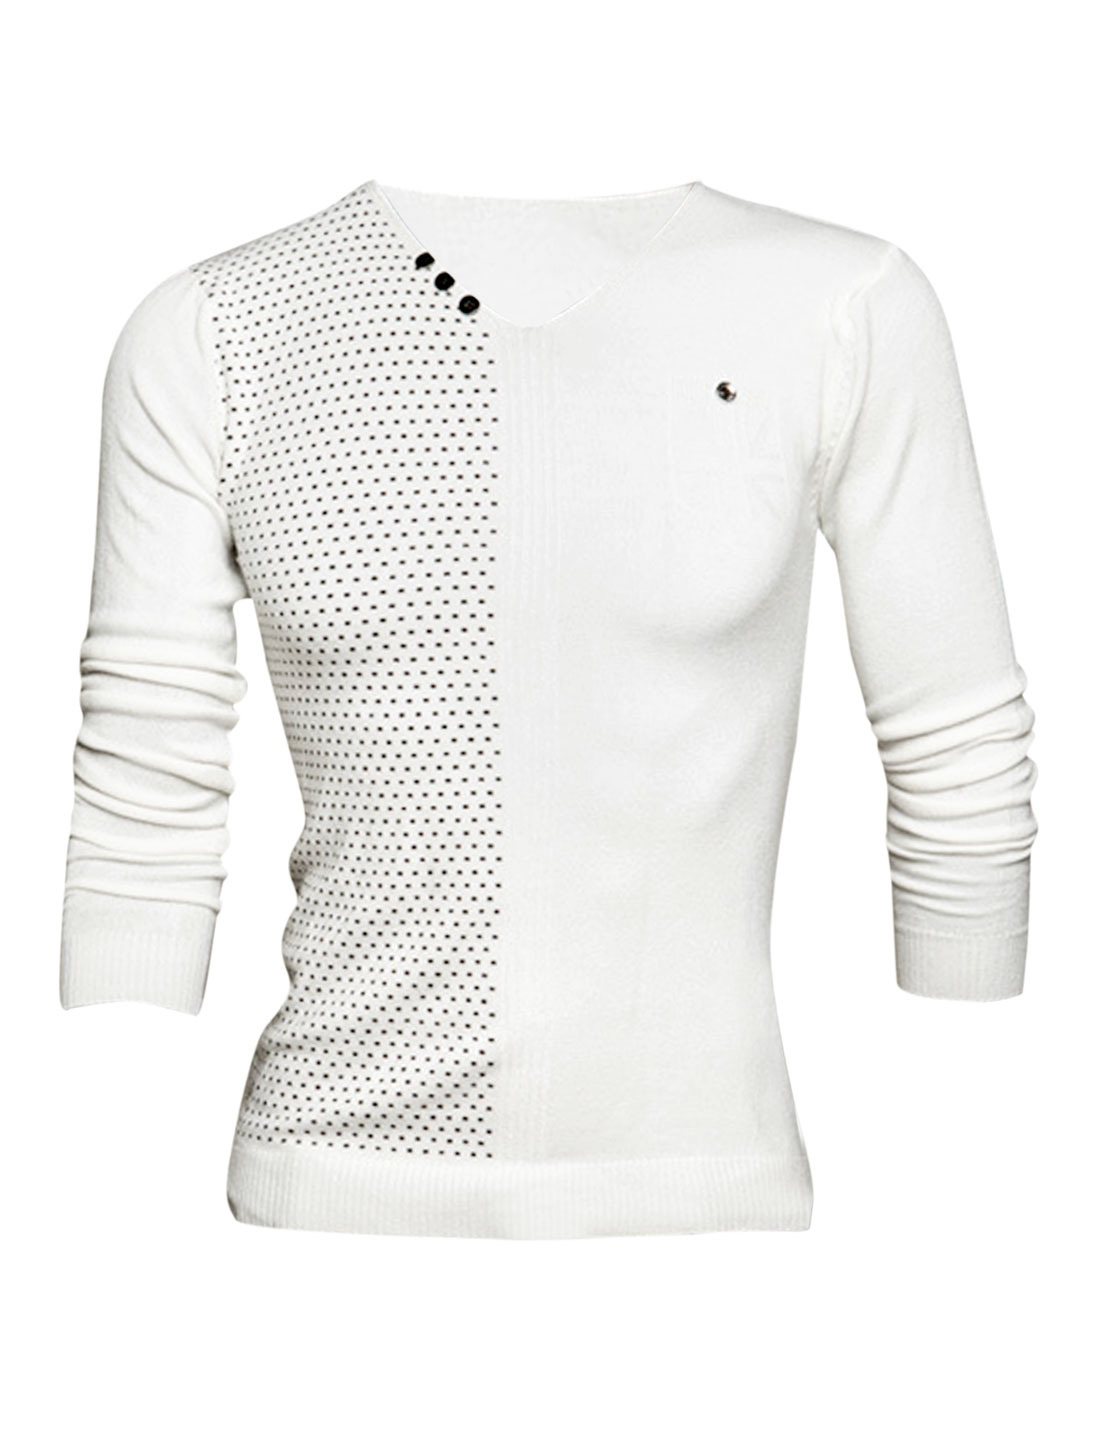 Men V Neck Novelty Prints Stitched Design Casual Knit Shirt White M